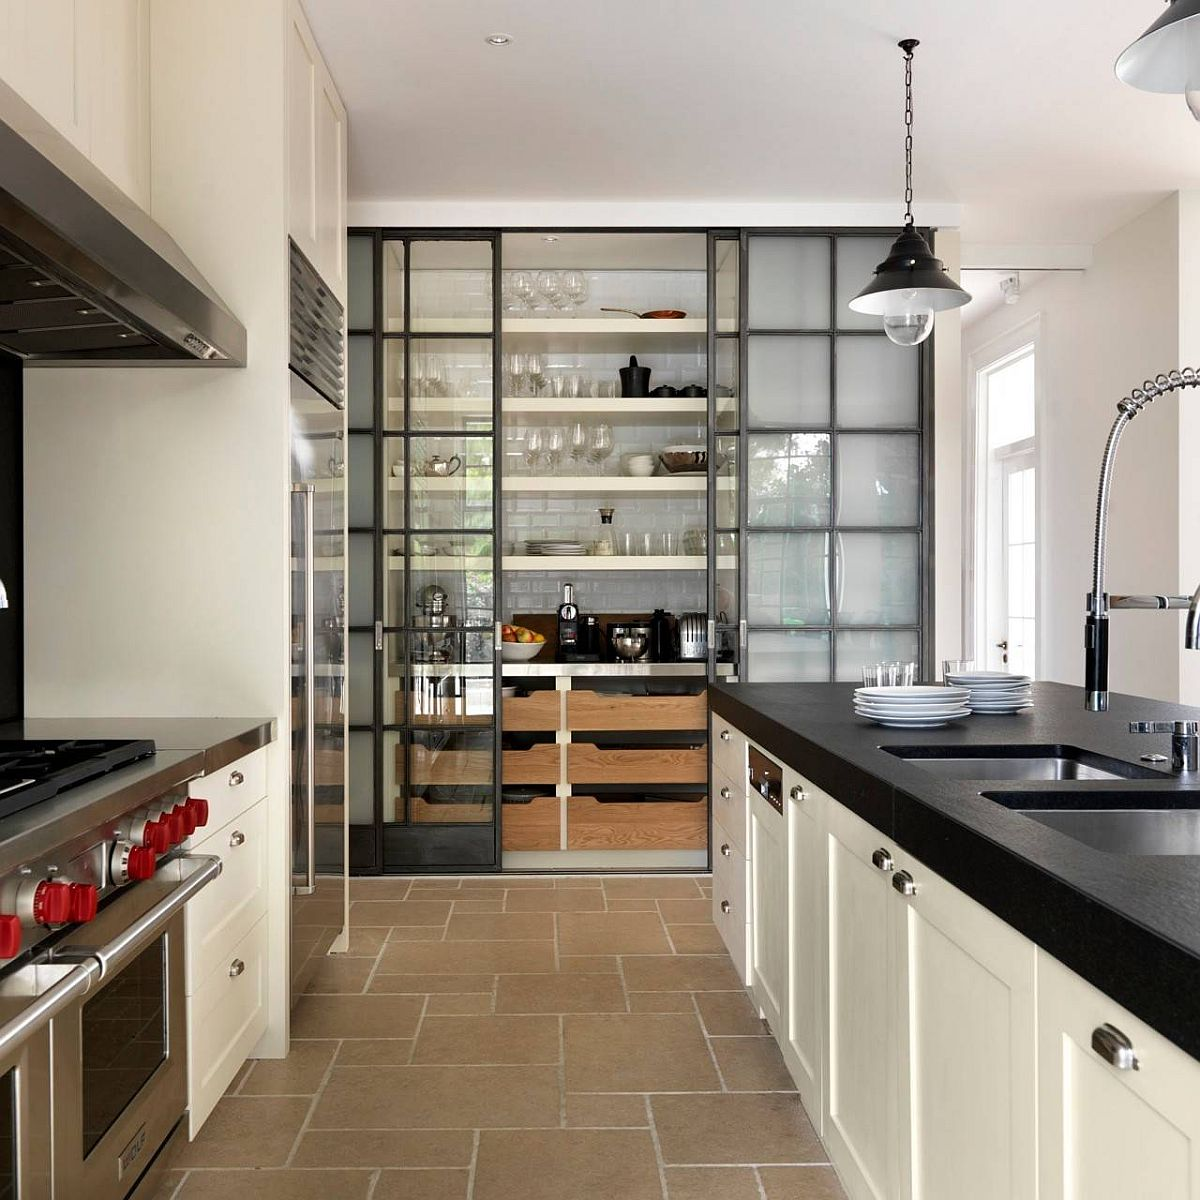 Pantry-inside-this-modern-Sydney-kitchen-has-an-understated-industrial-appeal-about-it-13278